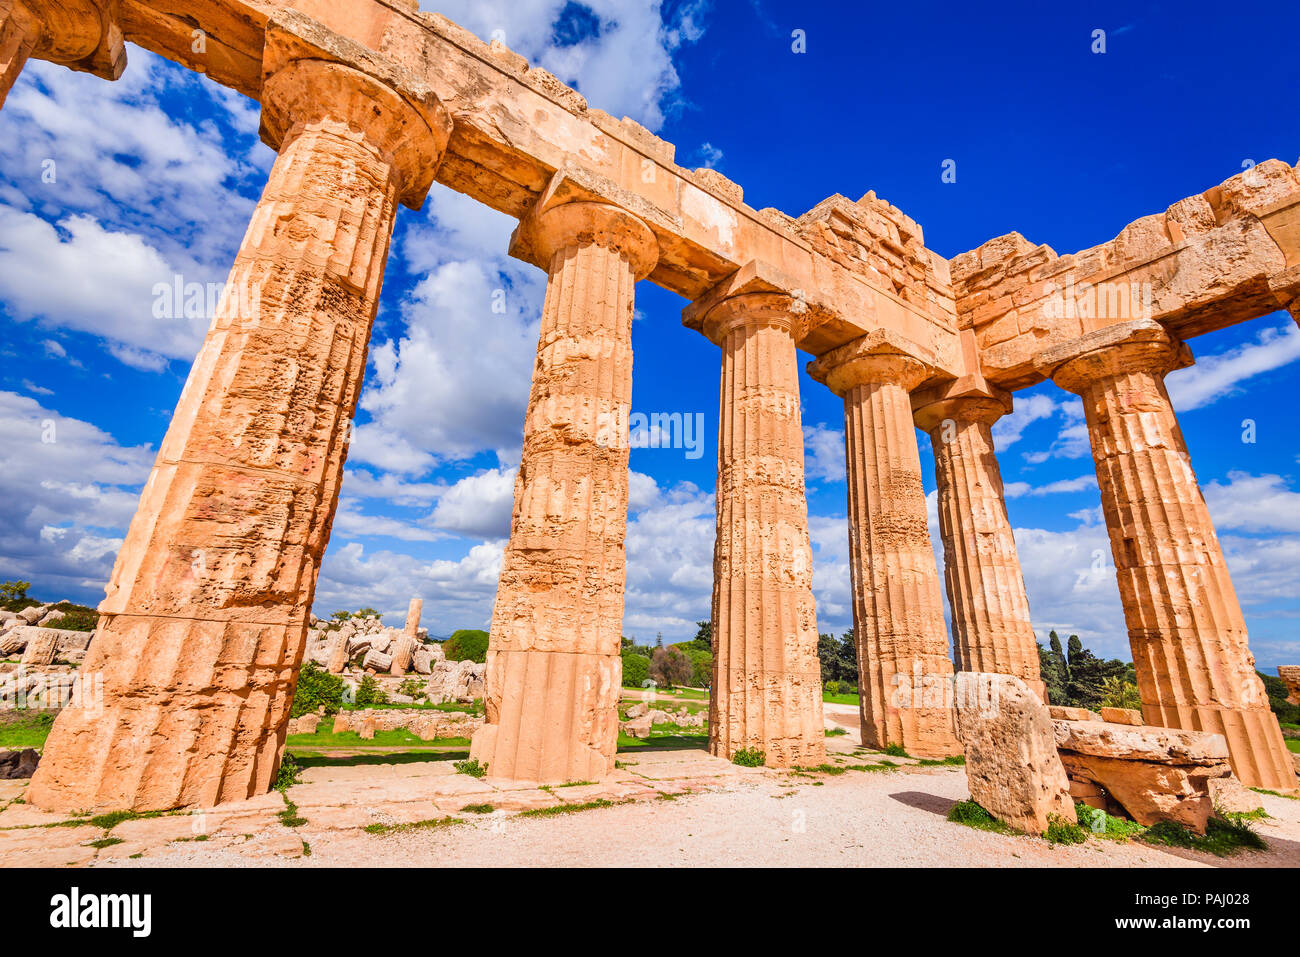 Sicily, Italy. Selinunte, ancient Greek temple of Hera ruins of Doric style architecture. - Stock Image